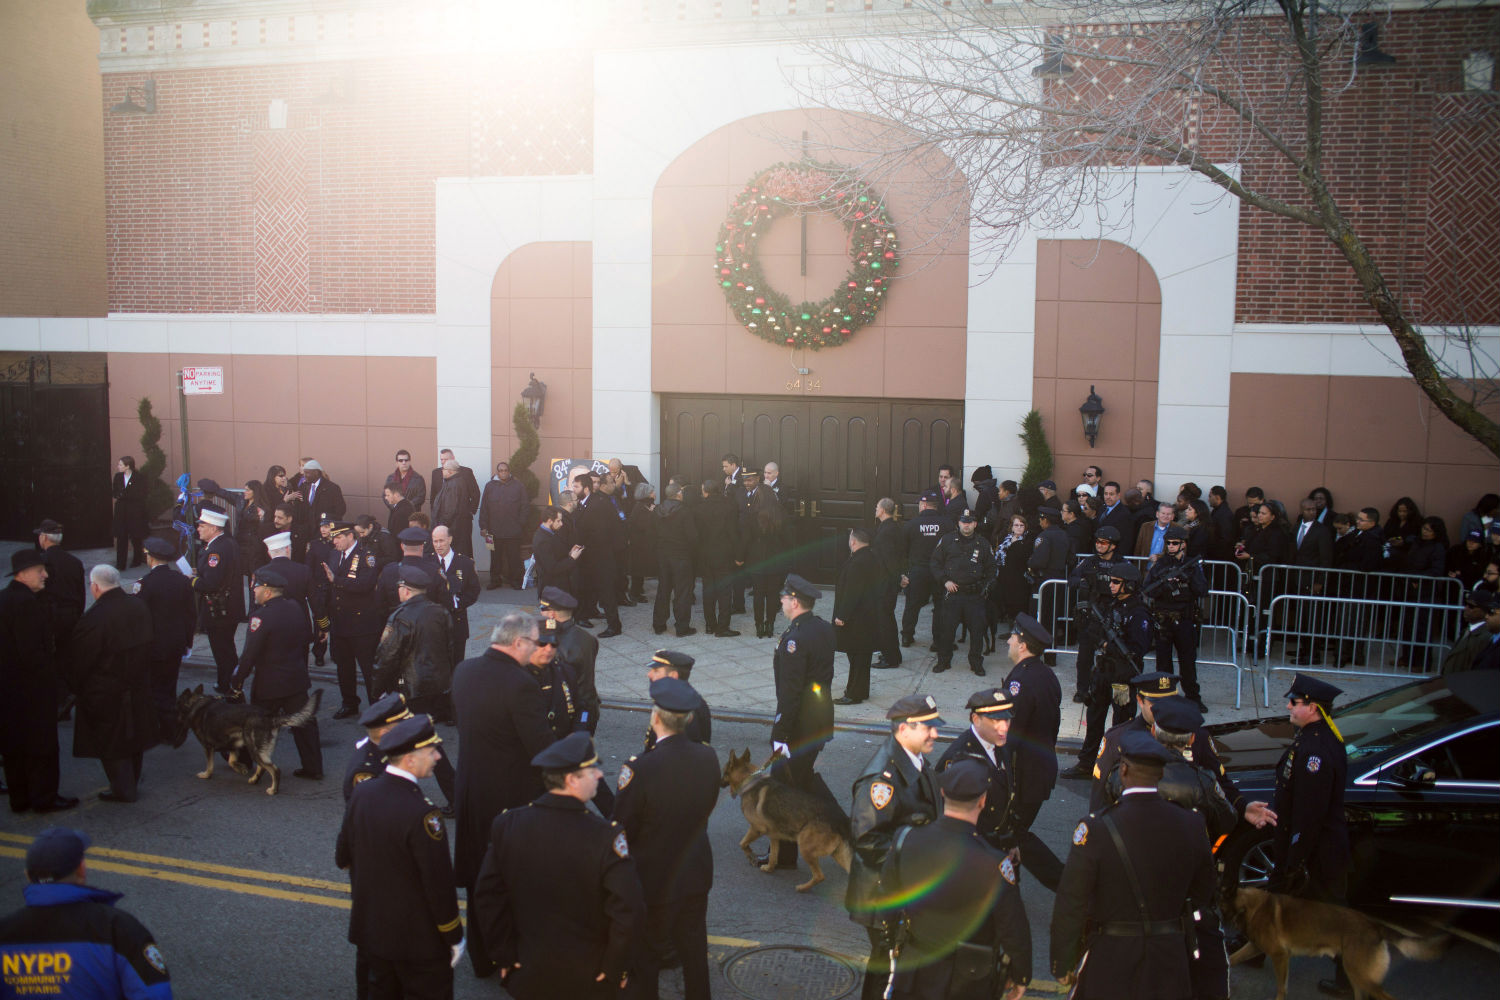 About 25,000 officers attended Ramos' funeral at Christ Tabernacle Church.